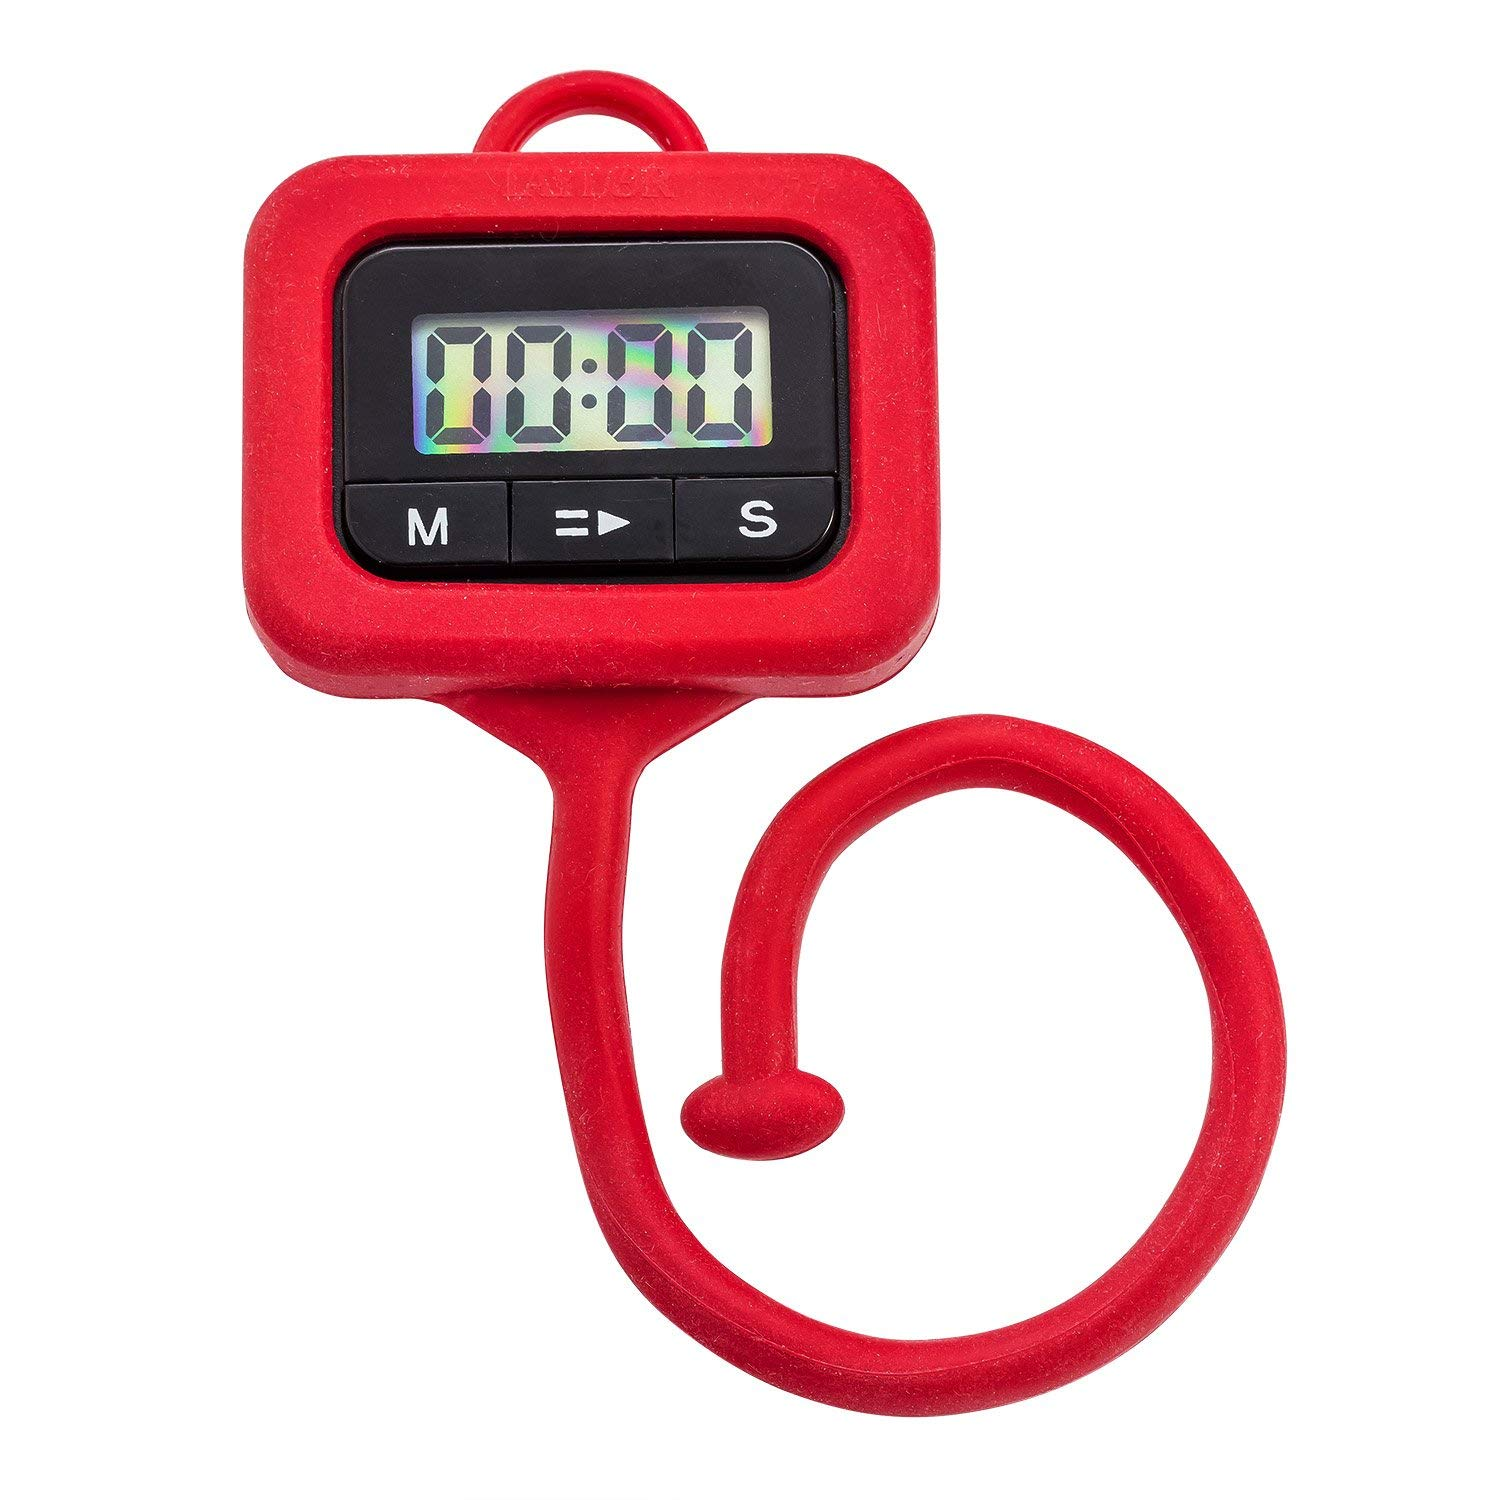 clip this portable kitchen timer to any nearby surface